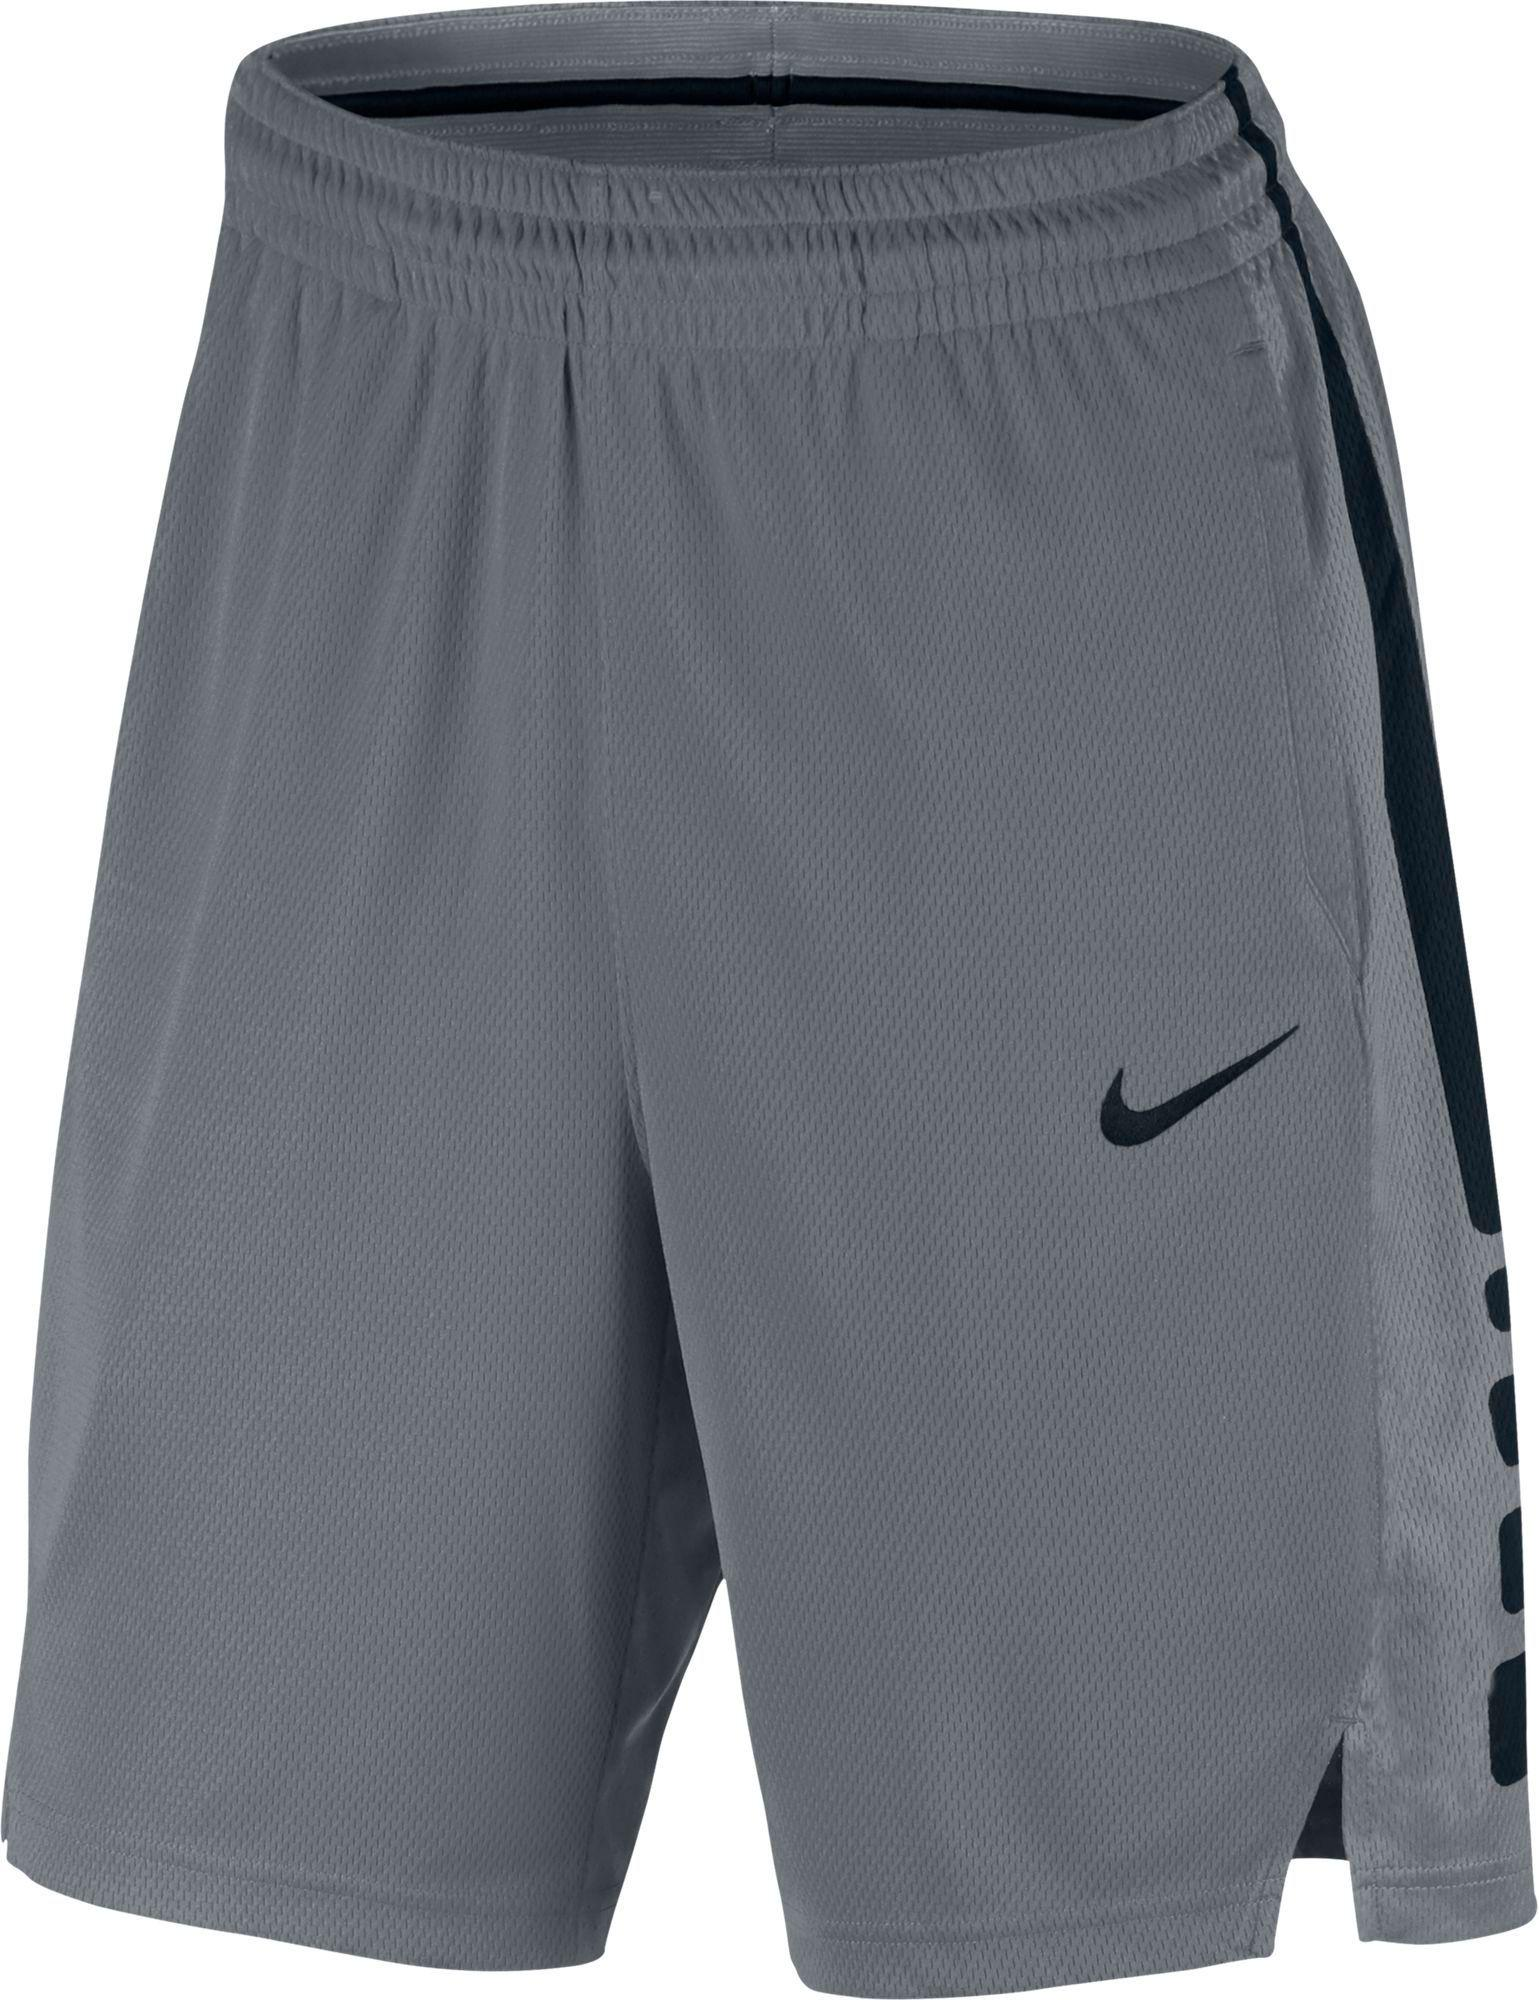 625cb11a5dd0 Lyst - Nike Men s Elite Dri-fit Basketball Shorts in Gray for Men ...